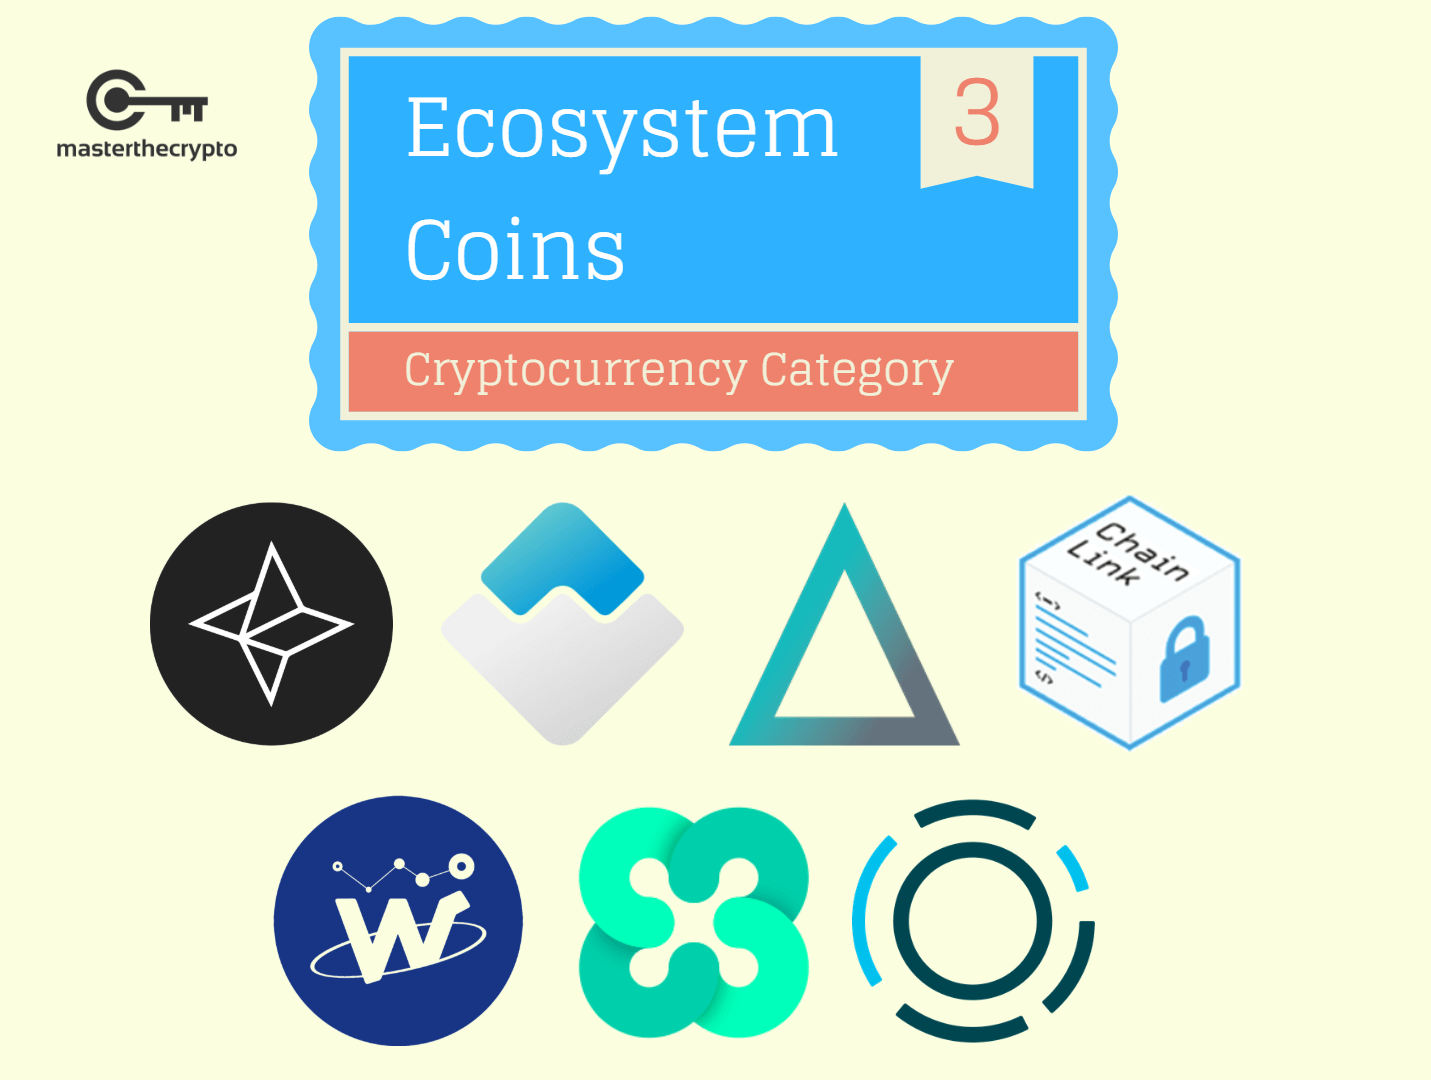 ecosystem, ecosystem coins, third category, coins, category